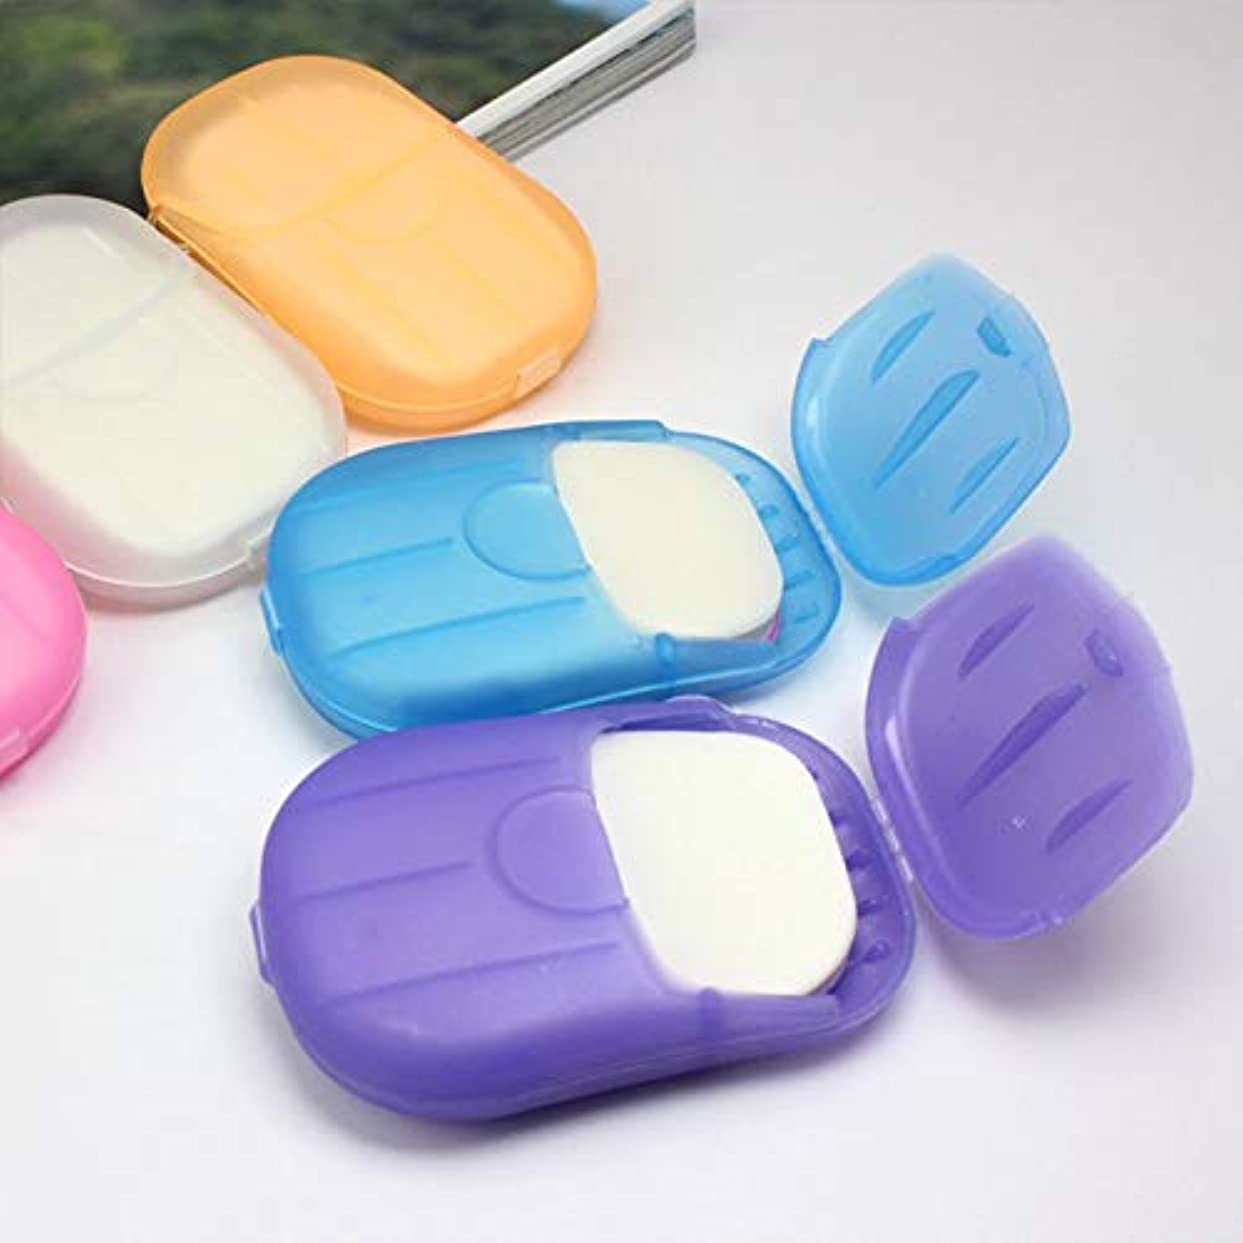 レース渇き常習者20 Pcs Paper Soap Outdoor Travel Bath Soap Tablets Portable Hand-washing